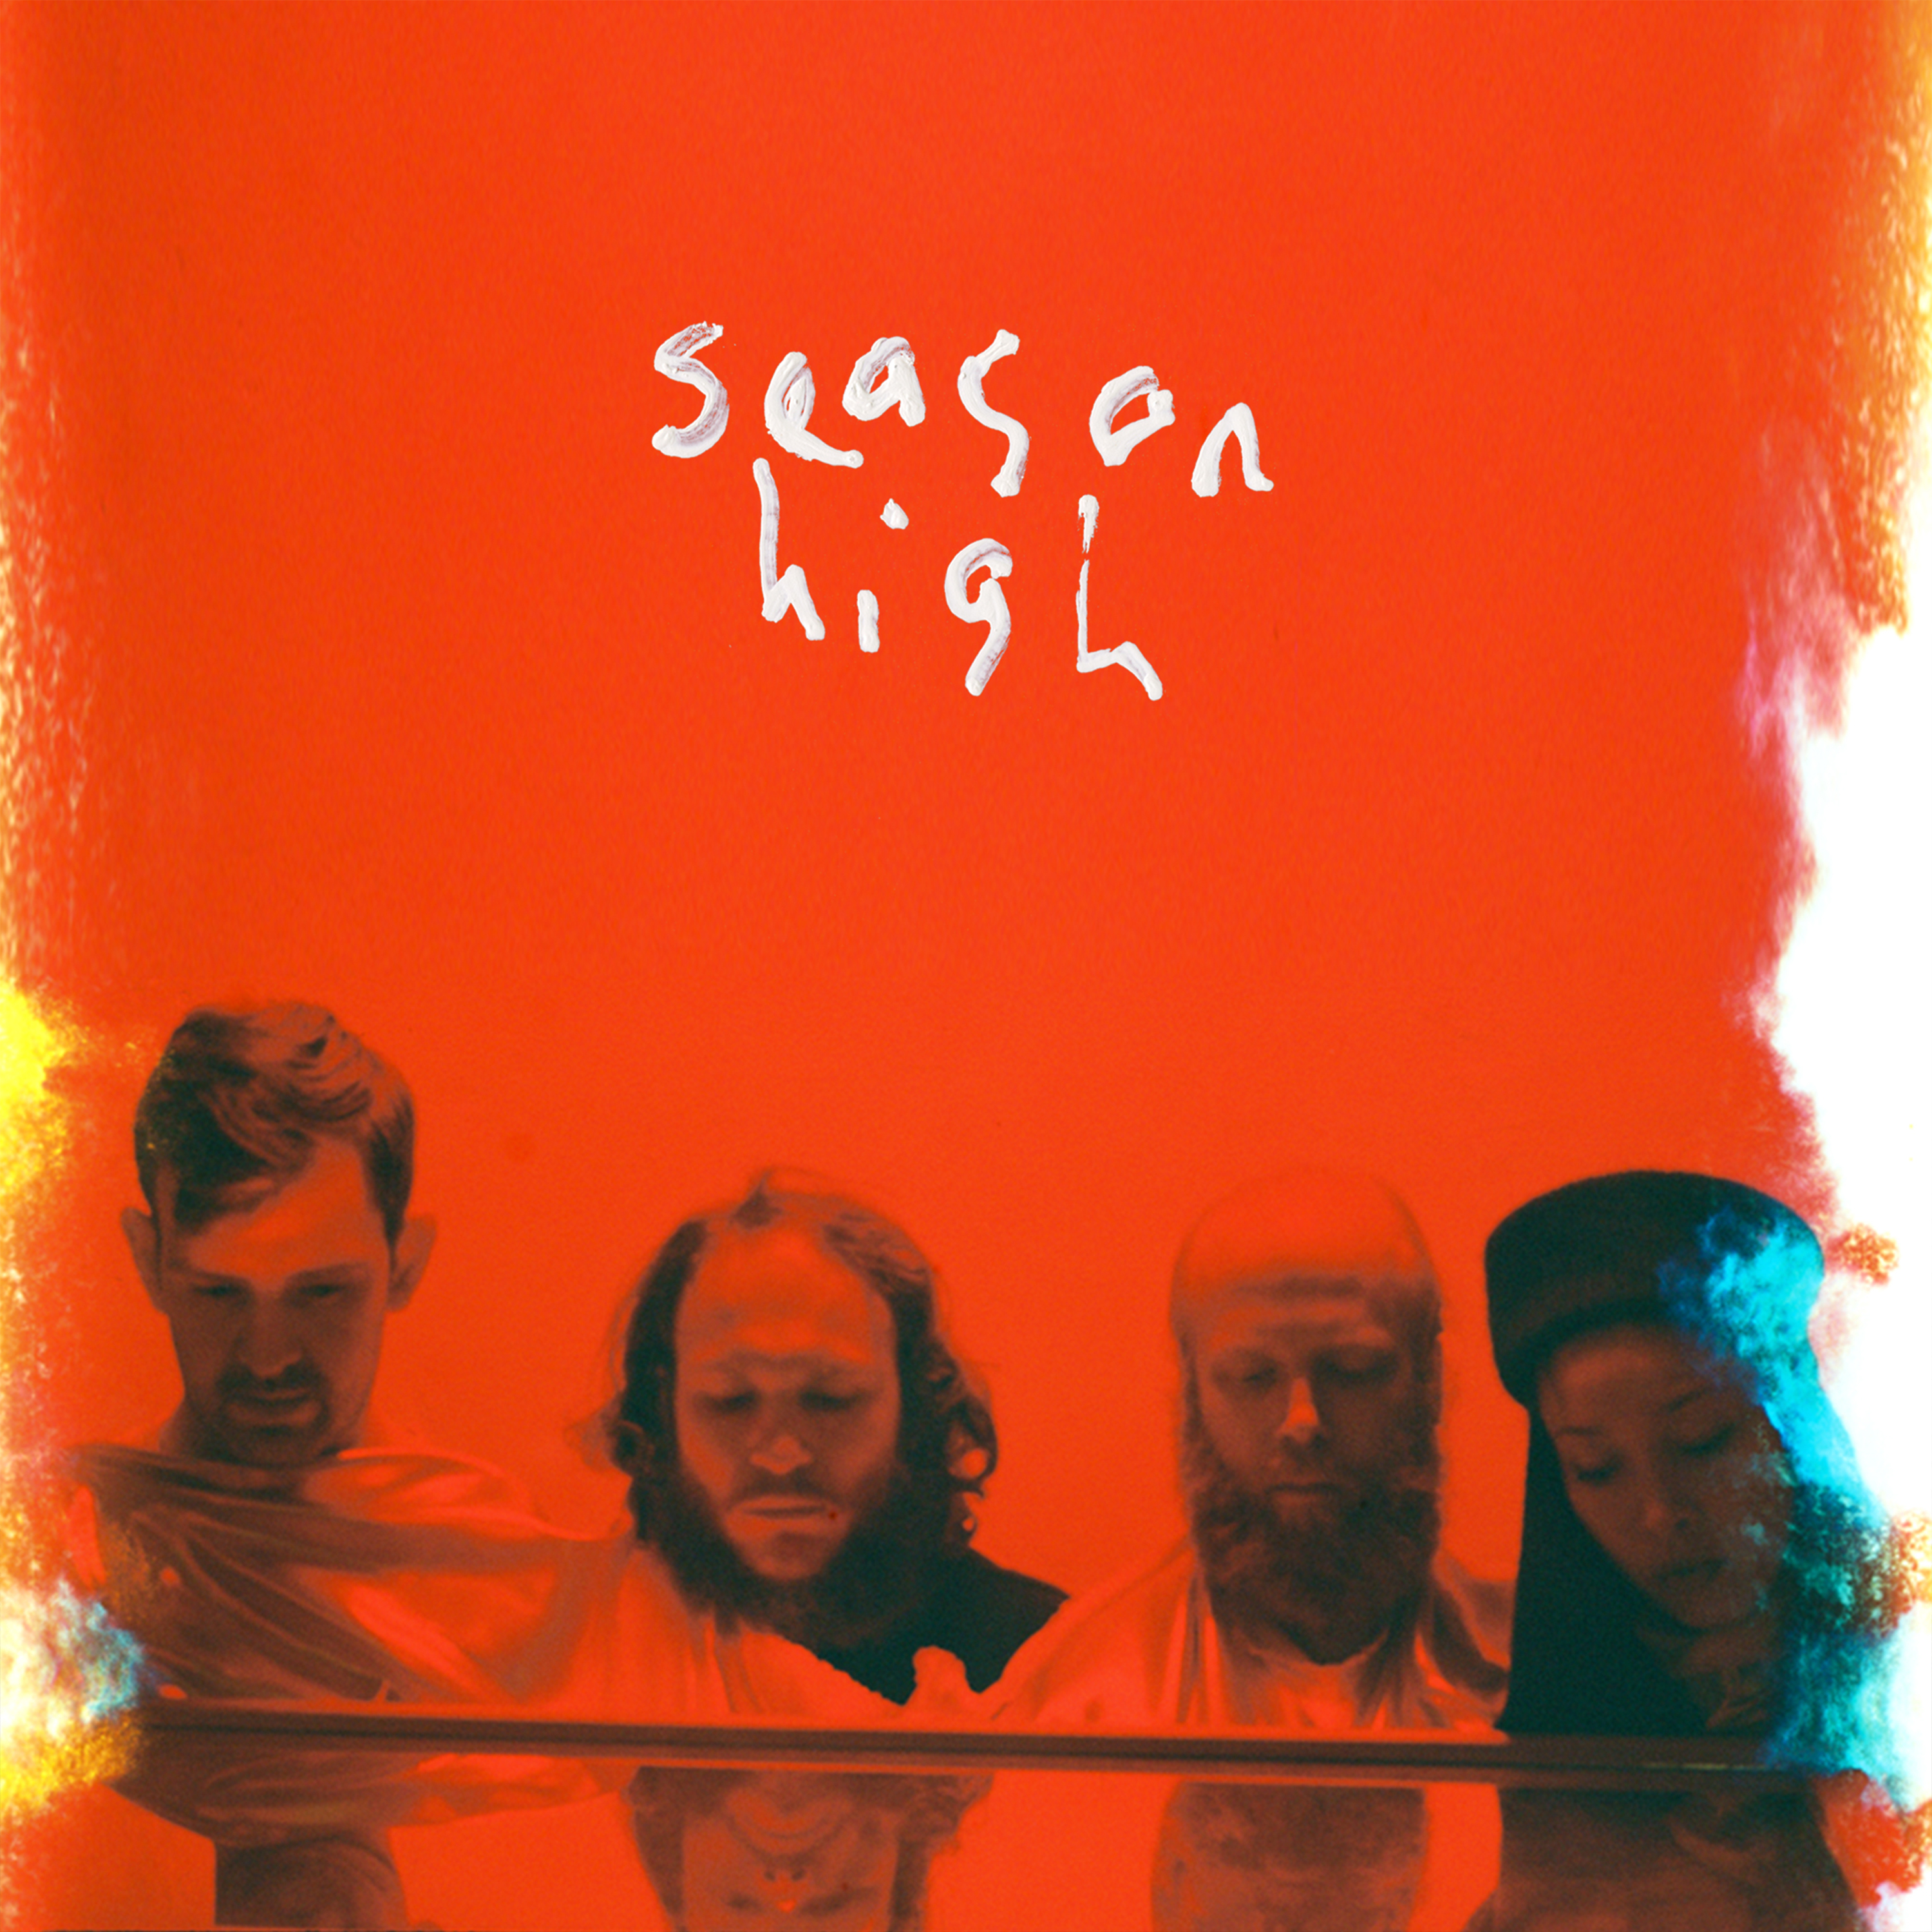 'Season High' by Little Dragon, album review by Callie Hitchcock.